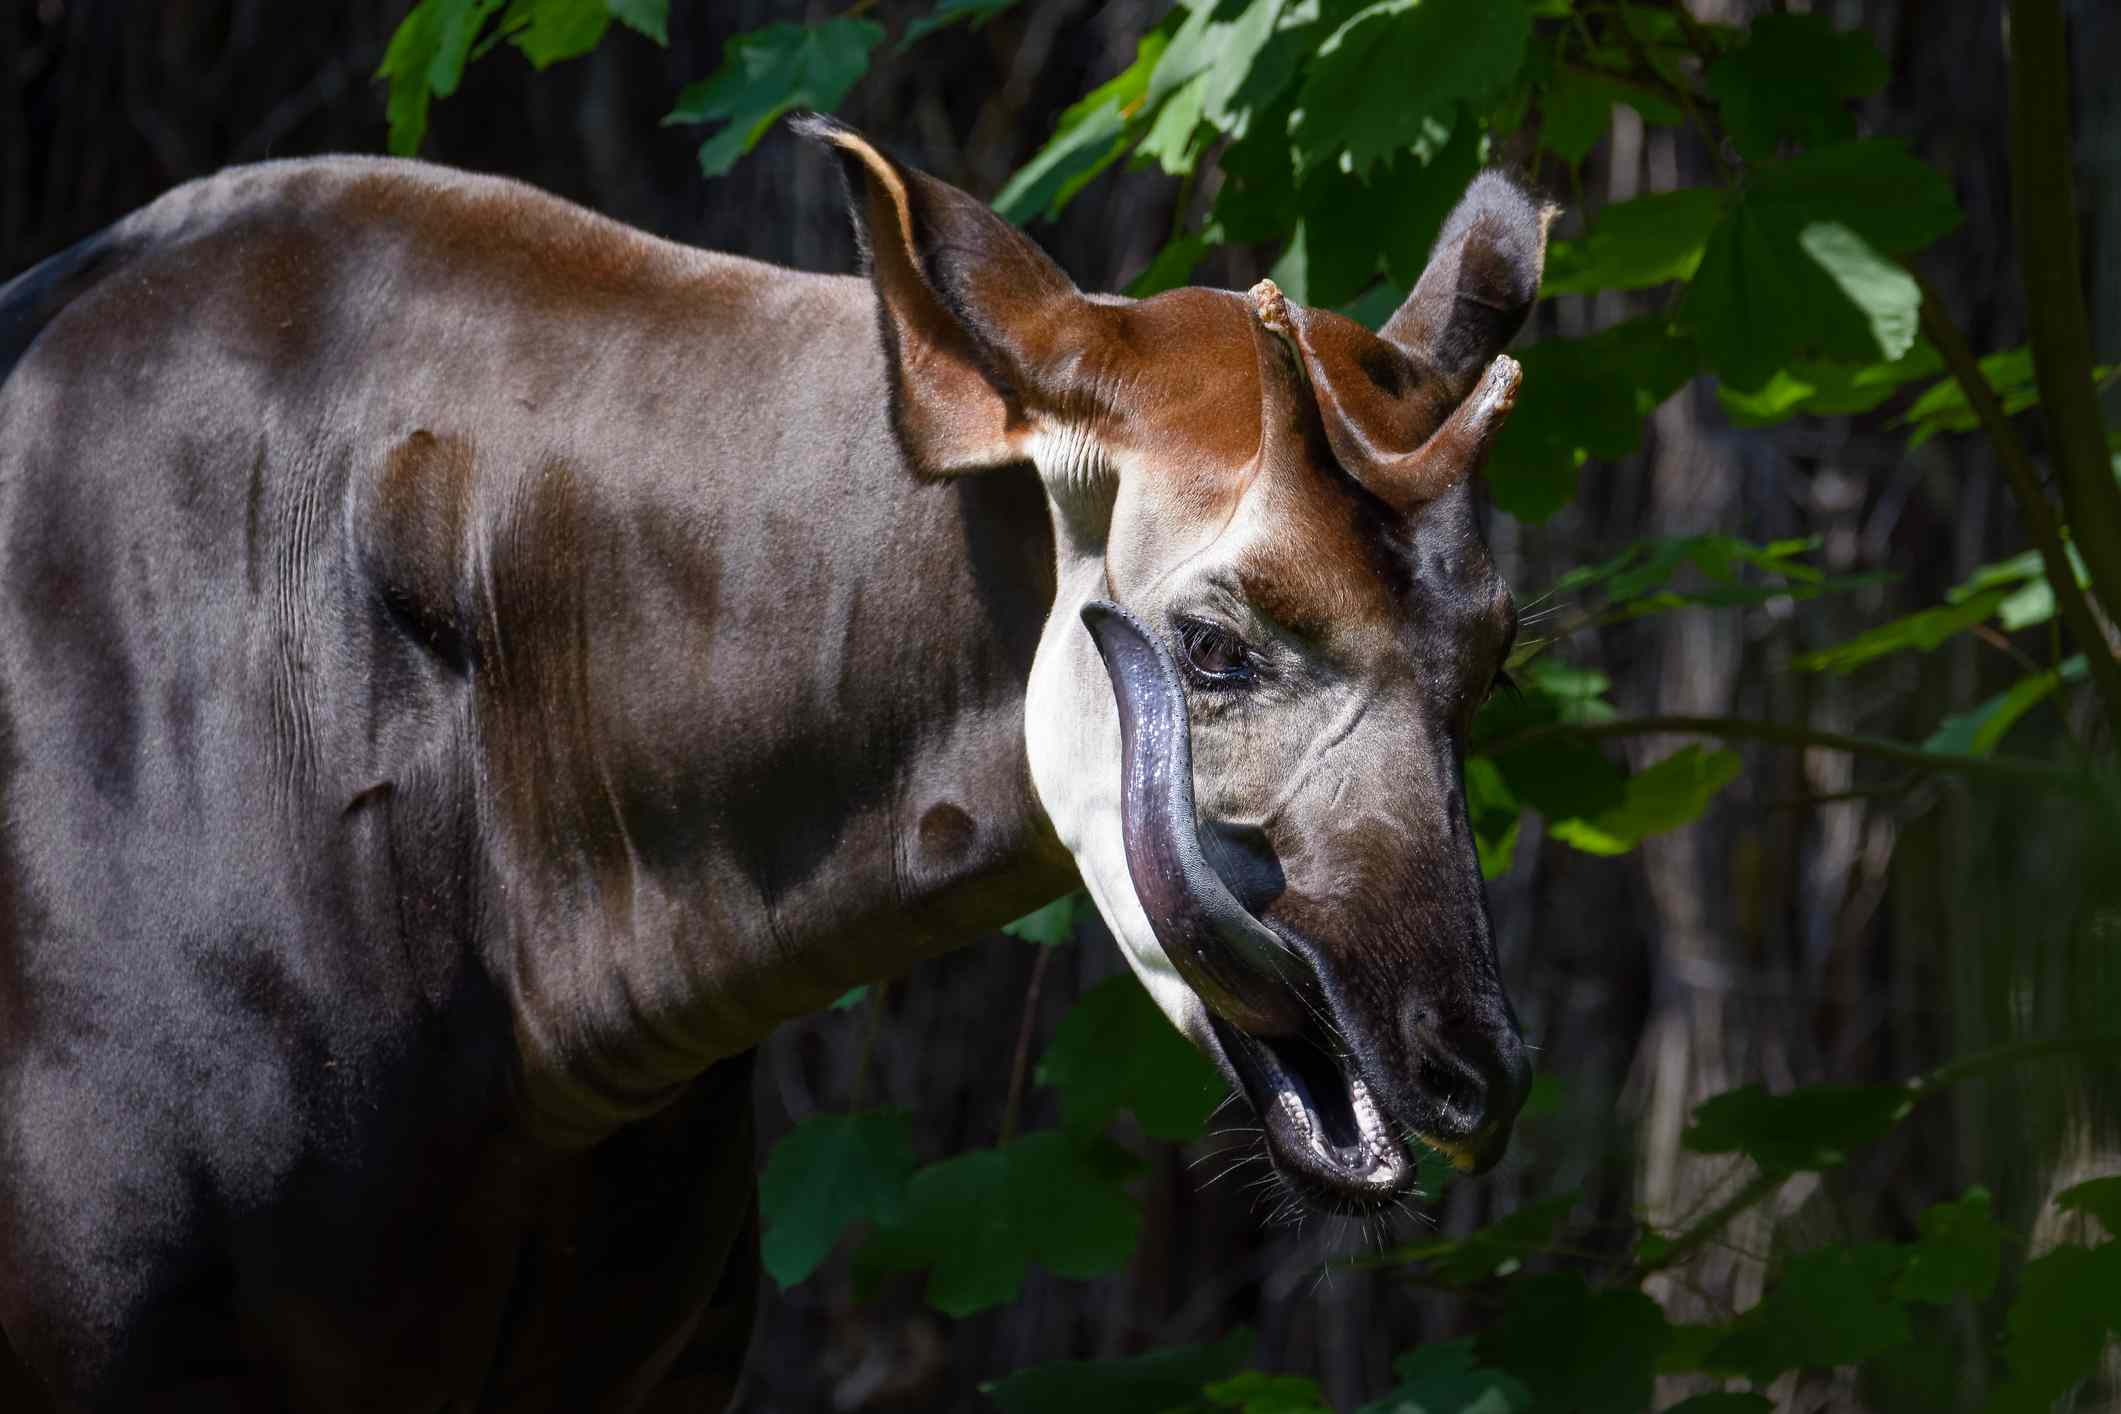 Okapi cleaning itself with its long tongue